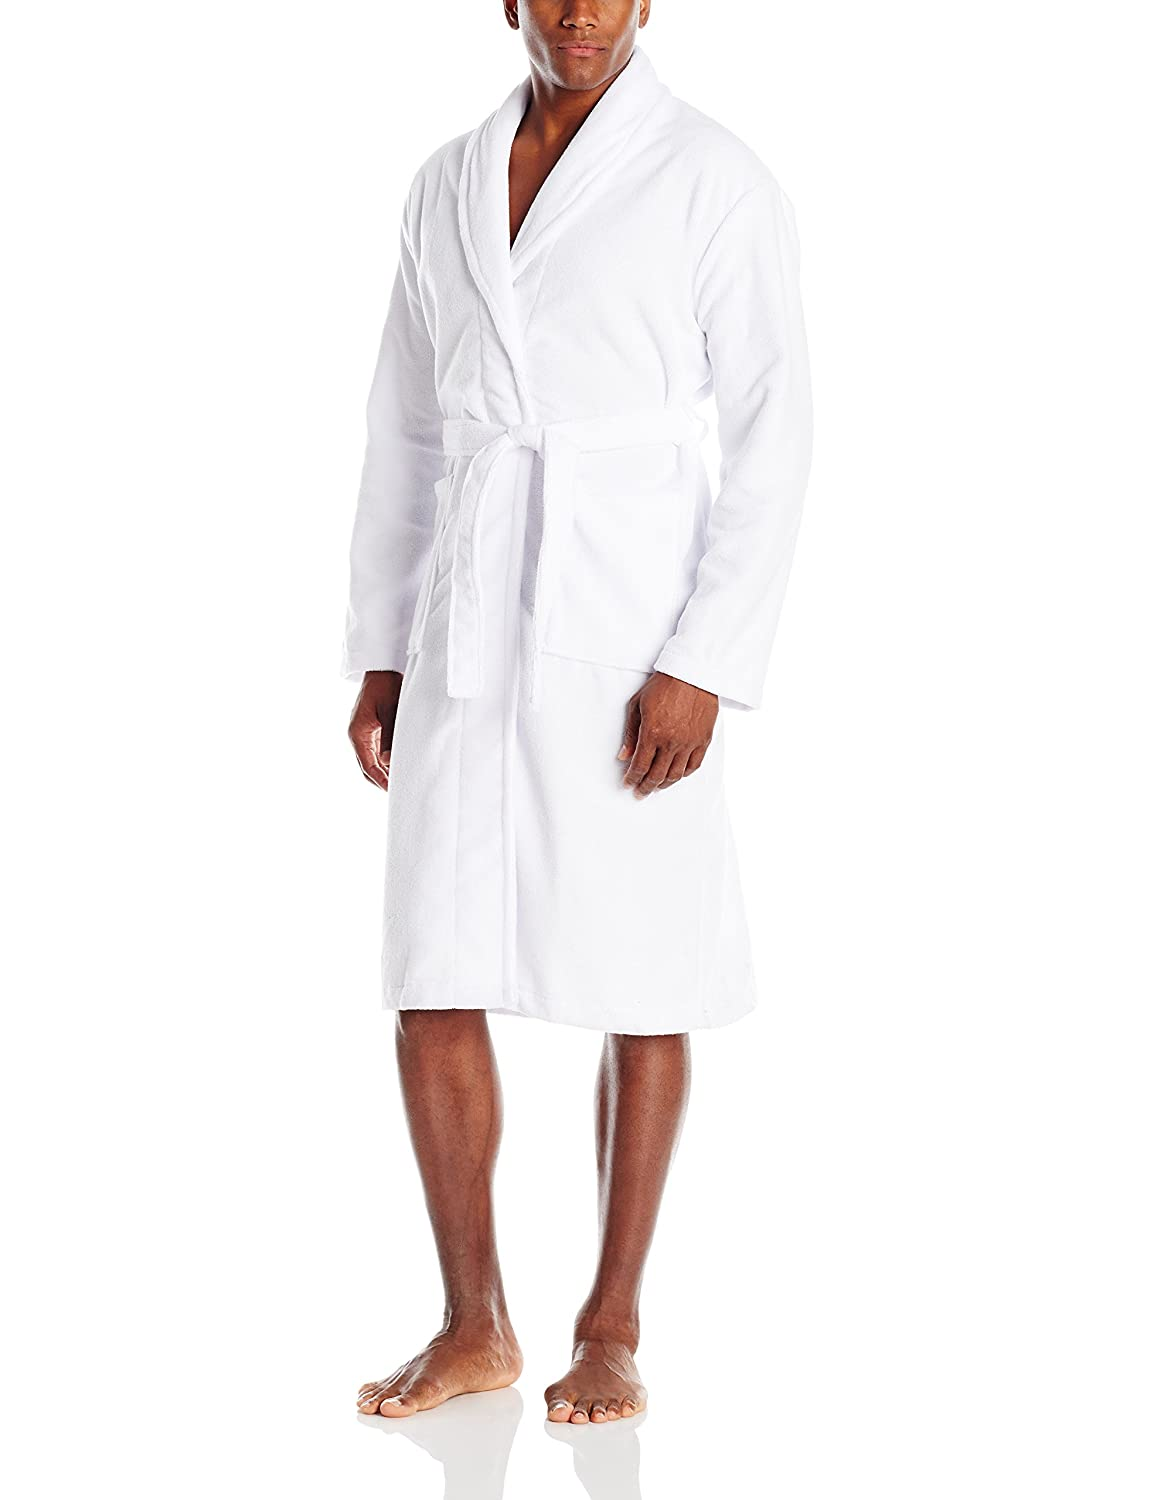 Hotel Spa Men's Terry Robe 12345